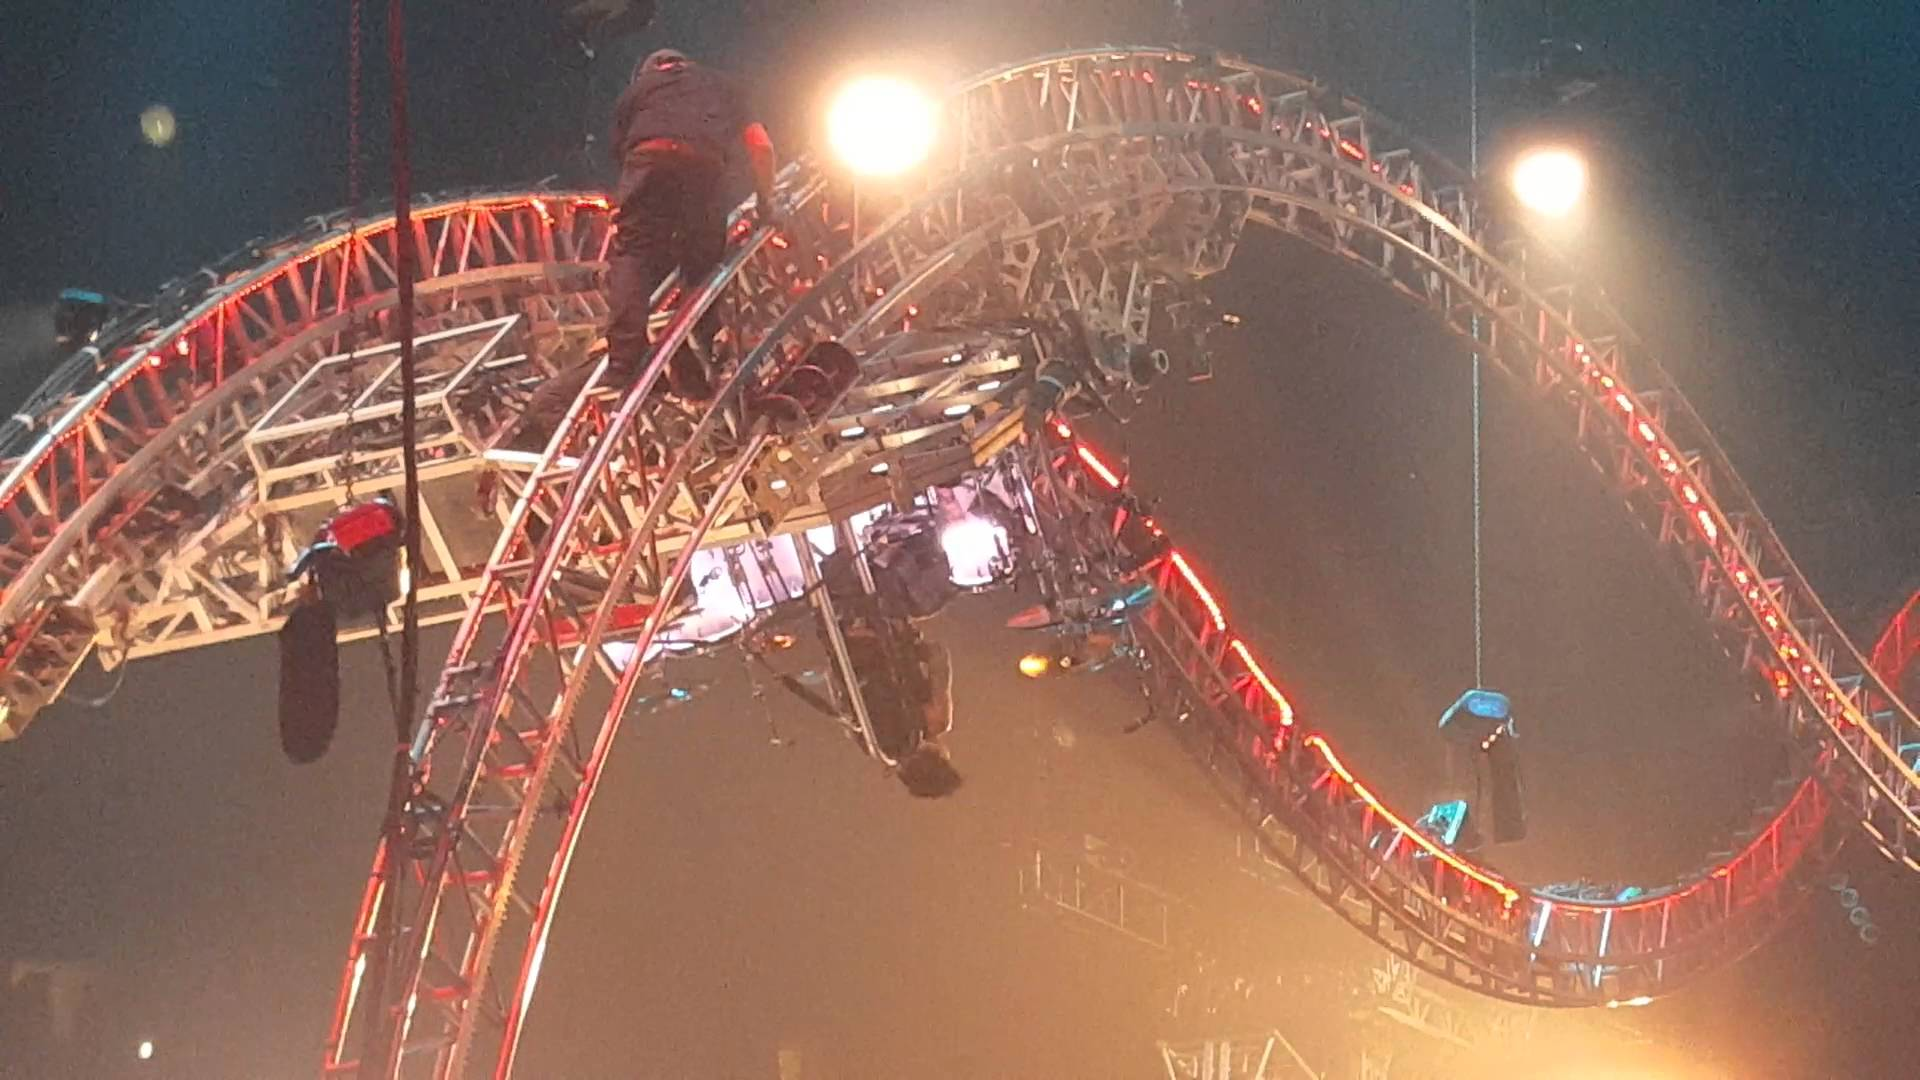 Tommy Lee gets stuck on rollercoaster during final Motley Crue show (Video)